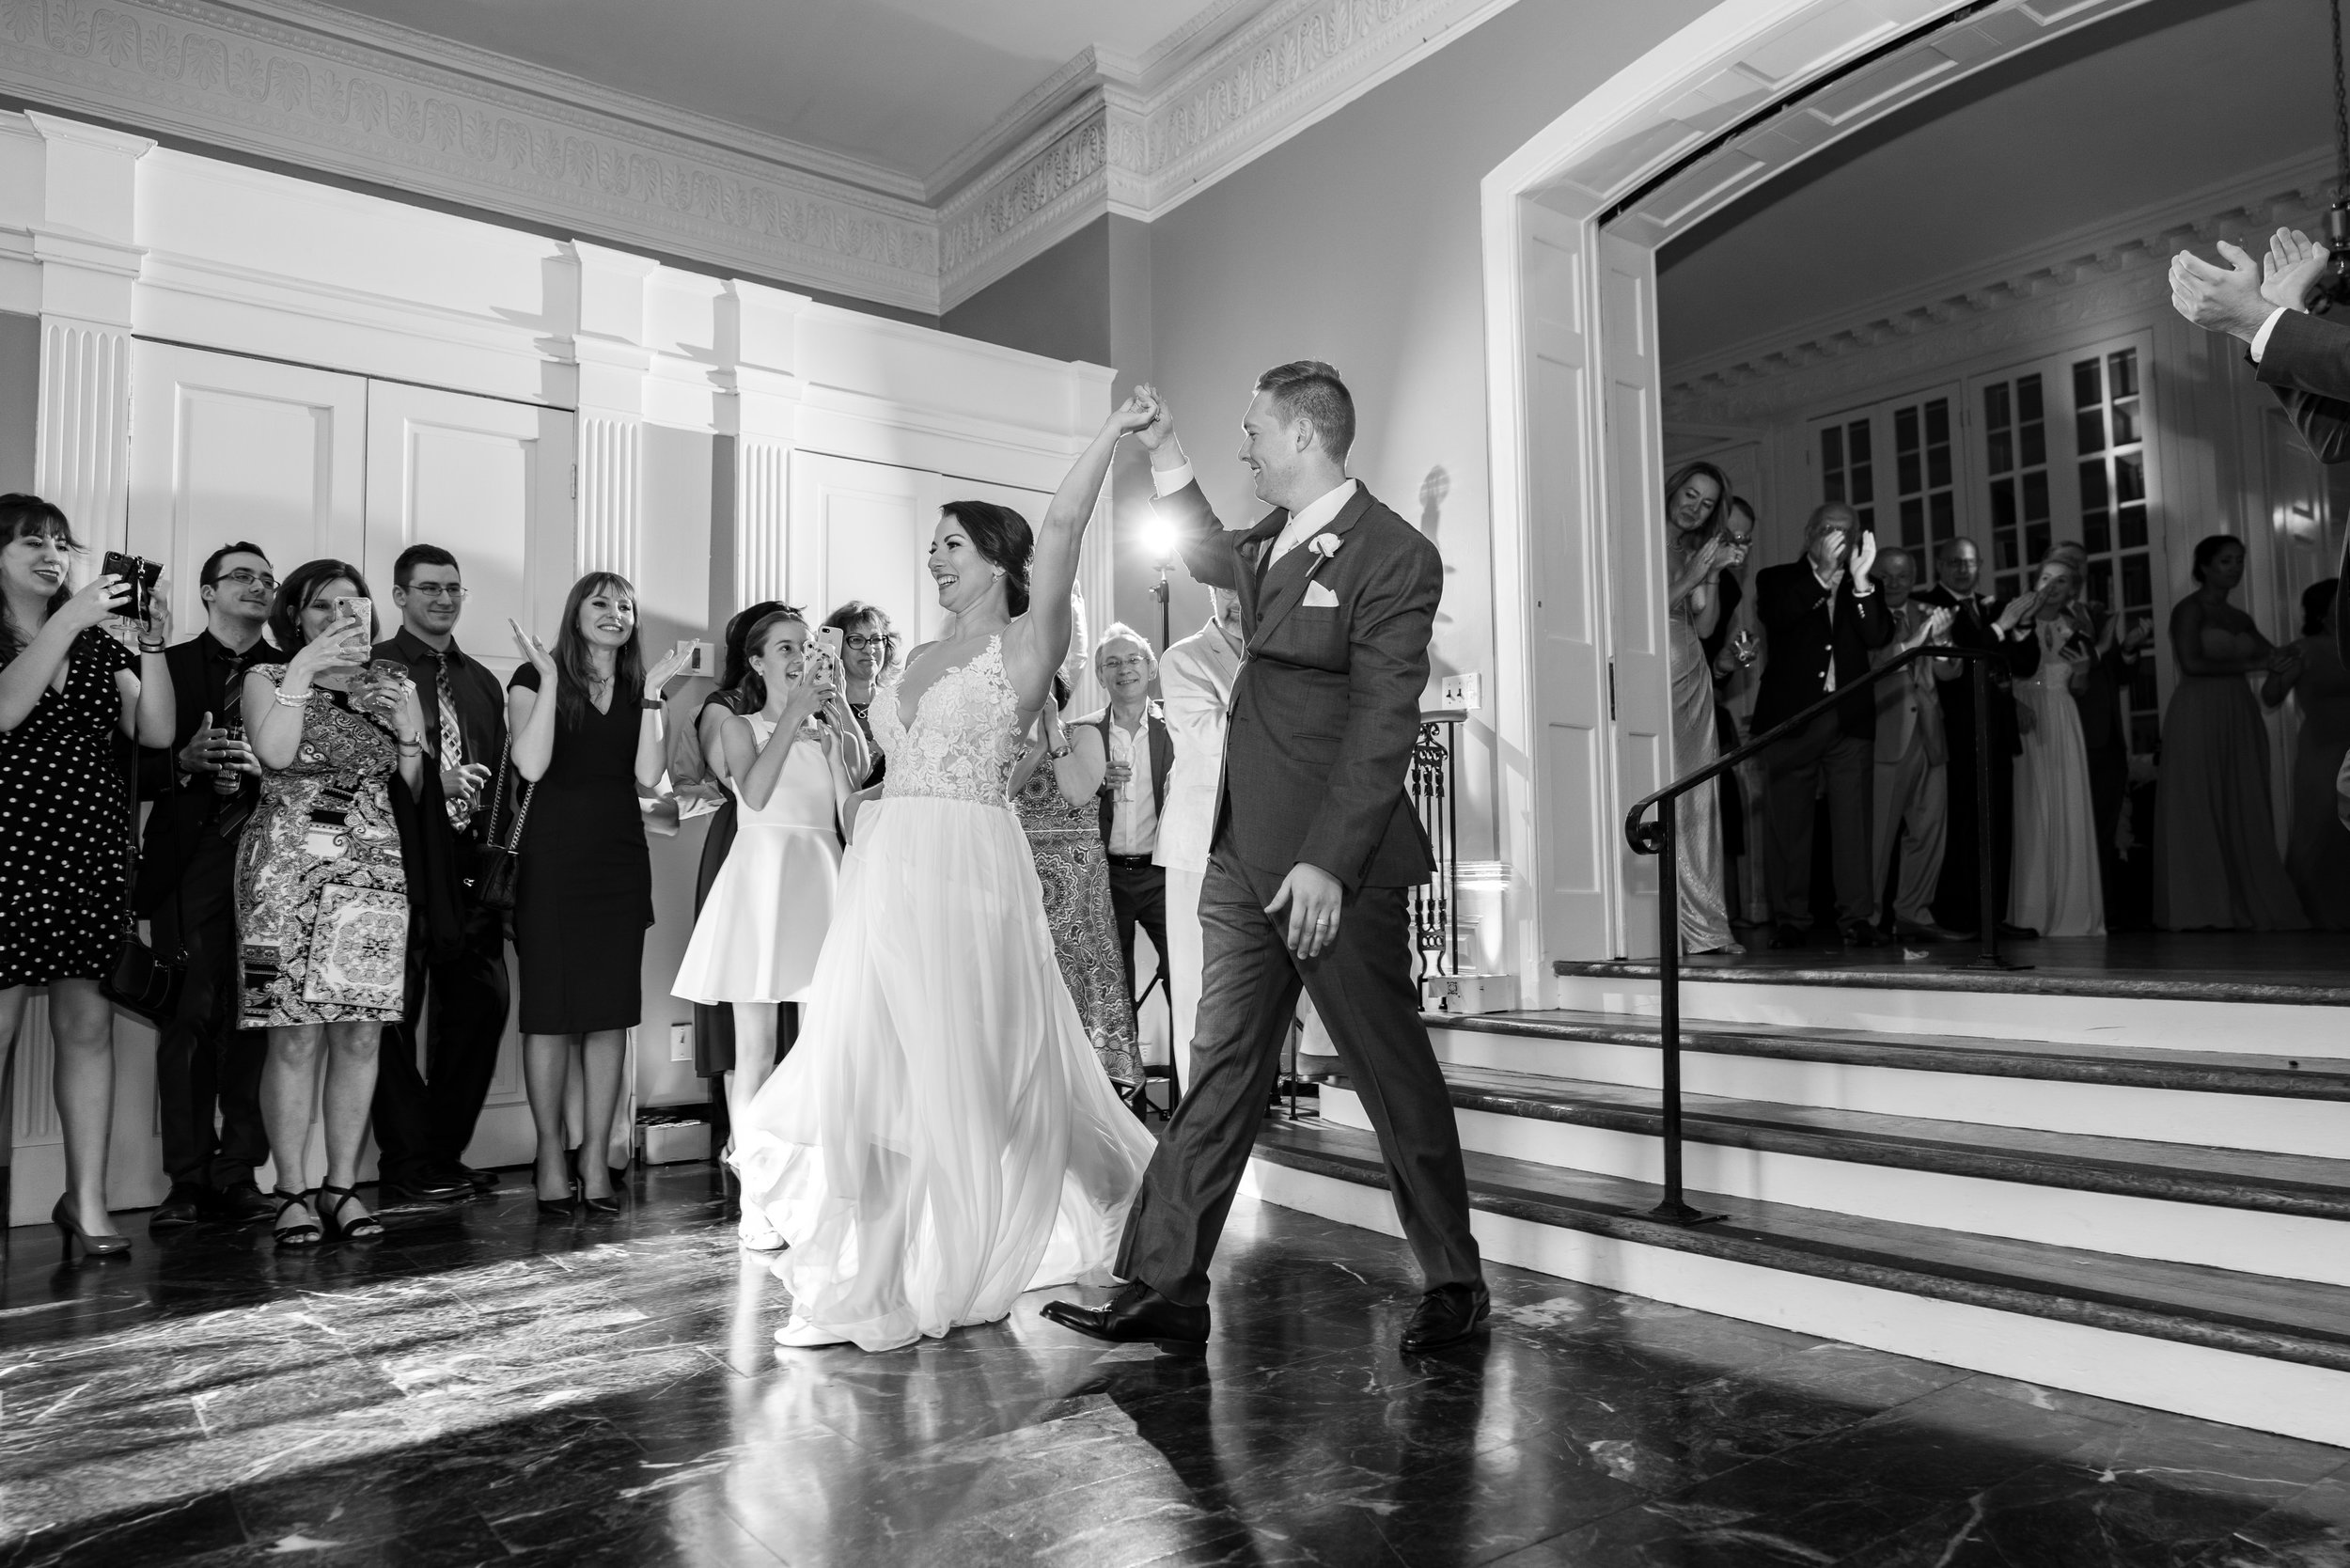 Dramatic choreographed first dance in ballroom at Glenview mansion